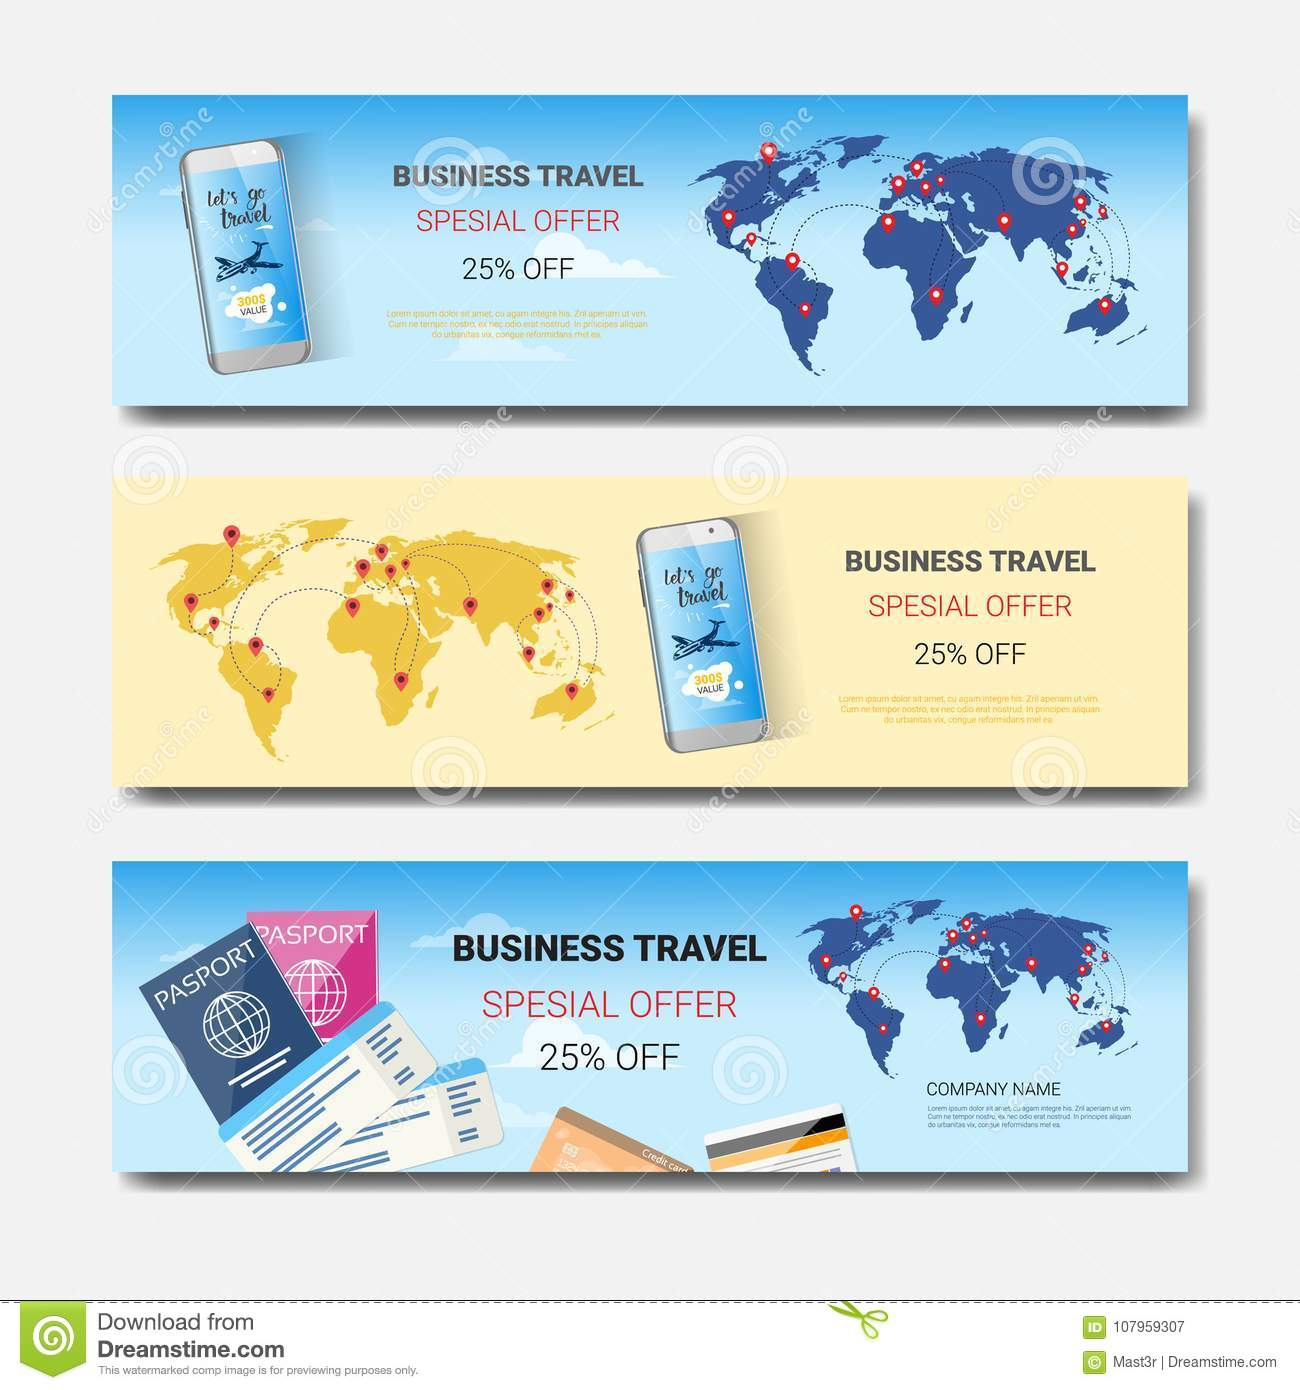 business travel special offer set of template horizontal banners